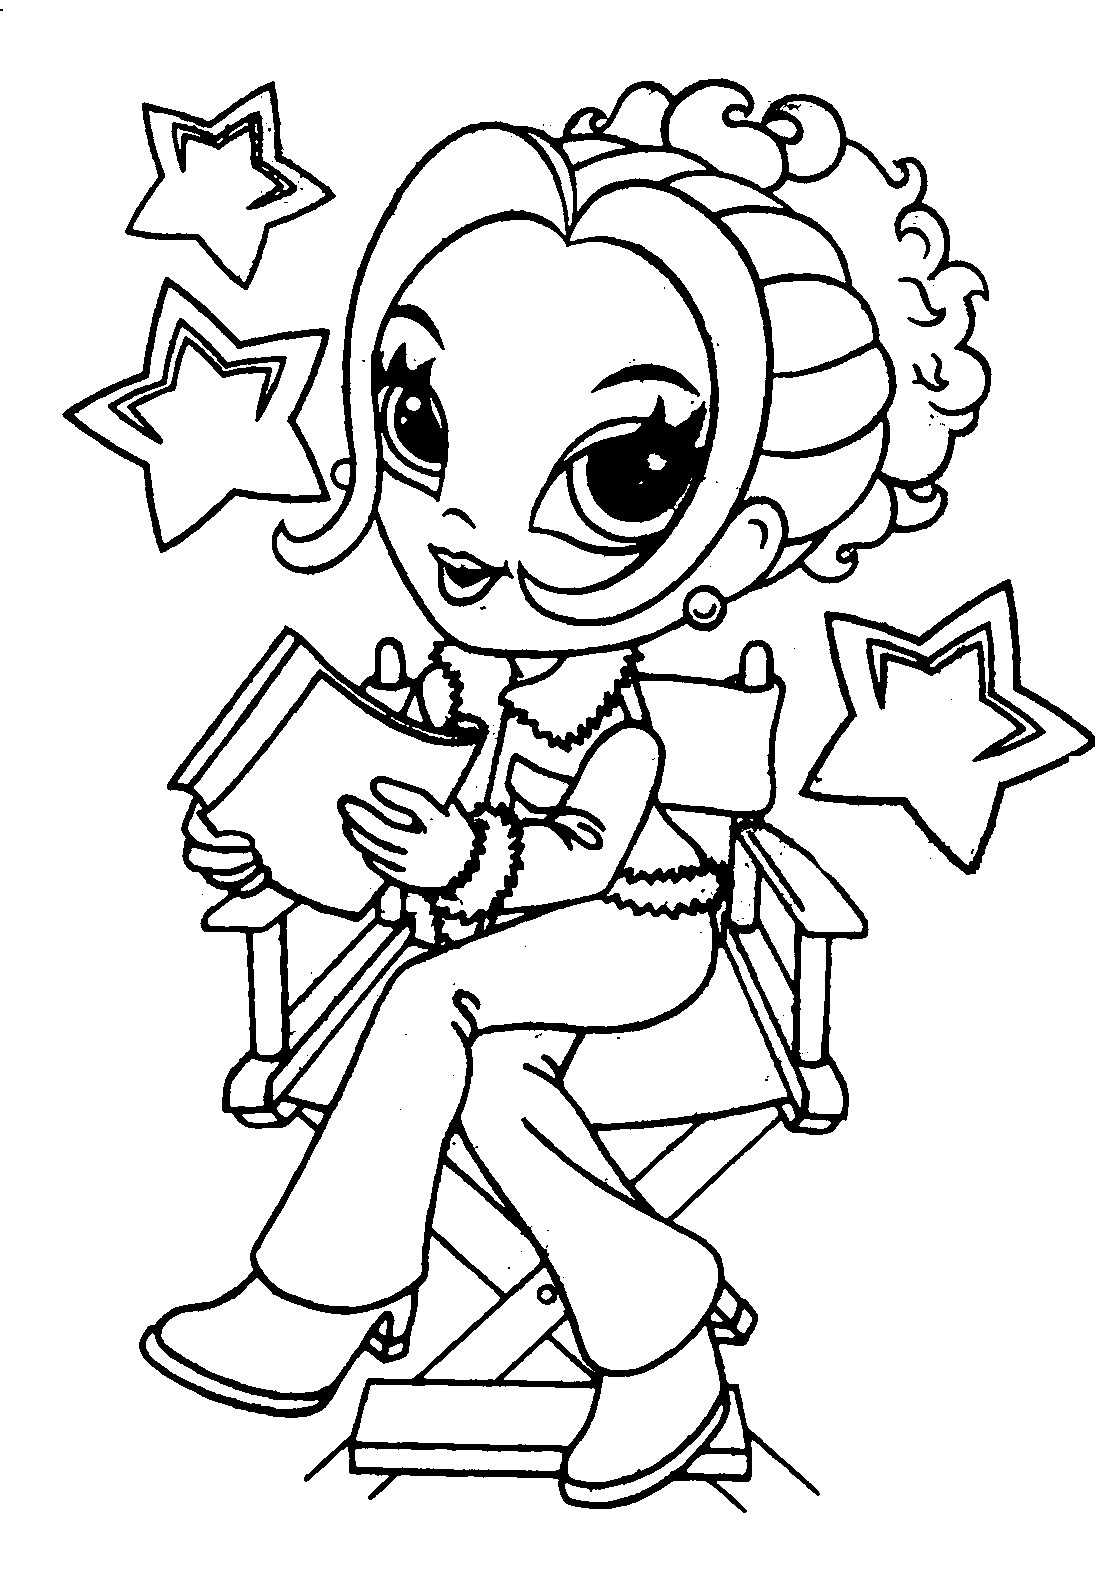 coloring pages girls coloring page the girl draws coloring pages girls